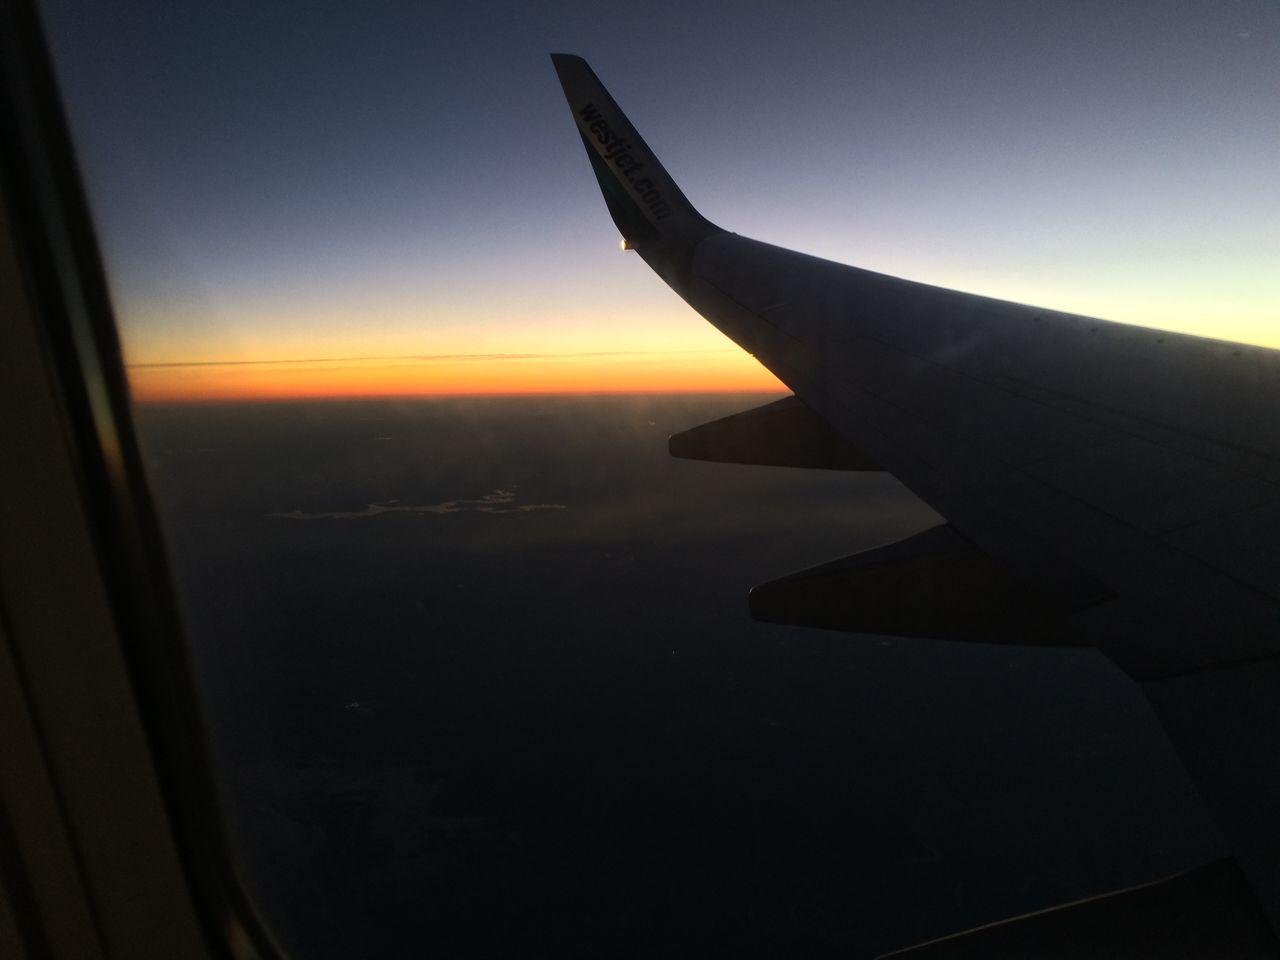 airplane, transportation, journey, air vehicle, sky, mode of transport, travel, sunset, airplane wing, aircraft wing, flying, nature, no people, aerial view, beauty in nature, cloud - sky, scenics, outdoors, sea, water, day, close-up